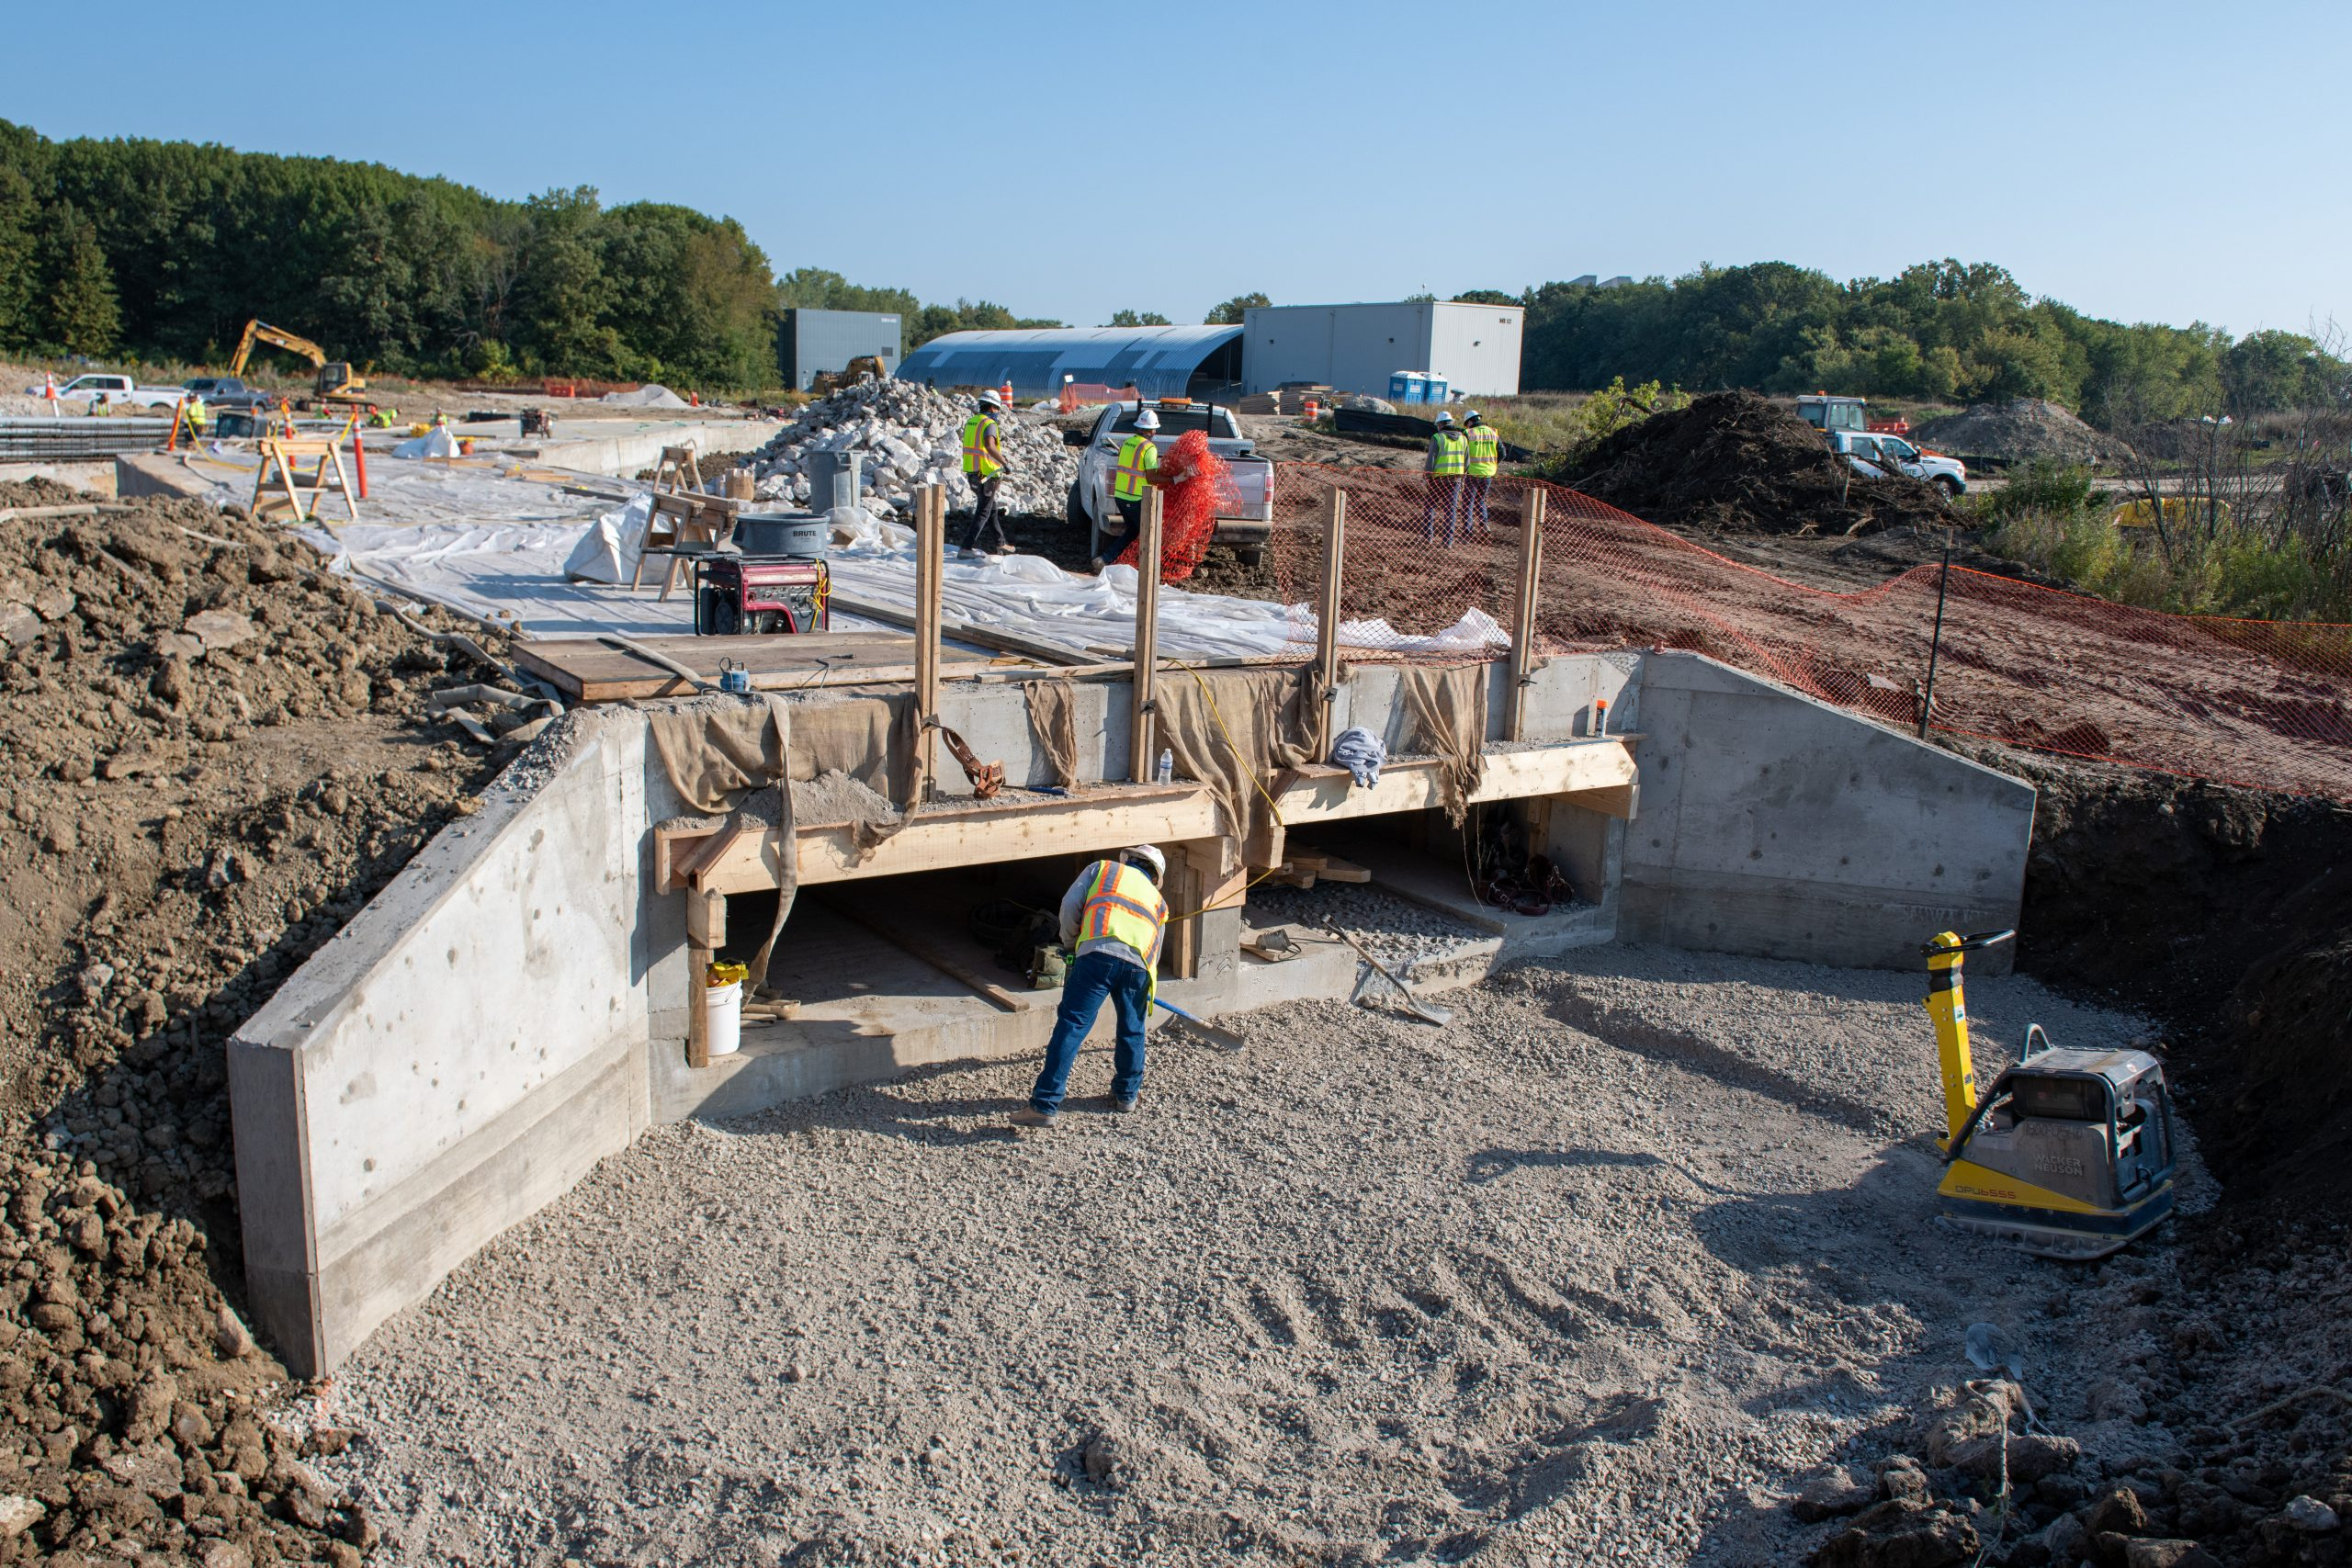 Crews build a new roughly 500-foot-long box culvert for the new alignment of Indian Creek, a small stream on the Fermilab site, which will flow under one of the site's main roads. The culvert includes a naturalized channel for fish.